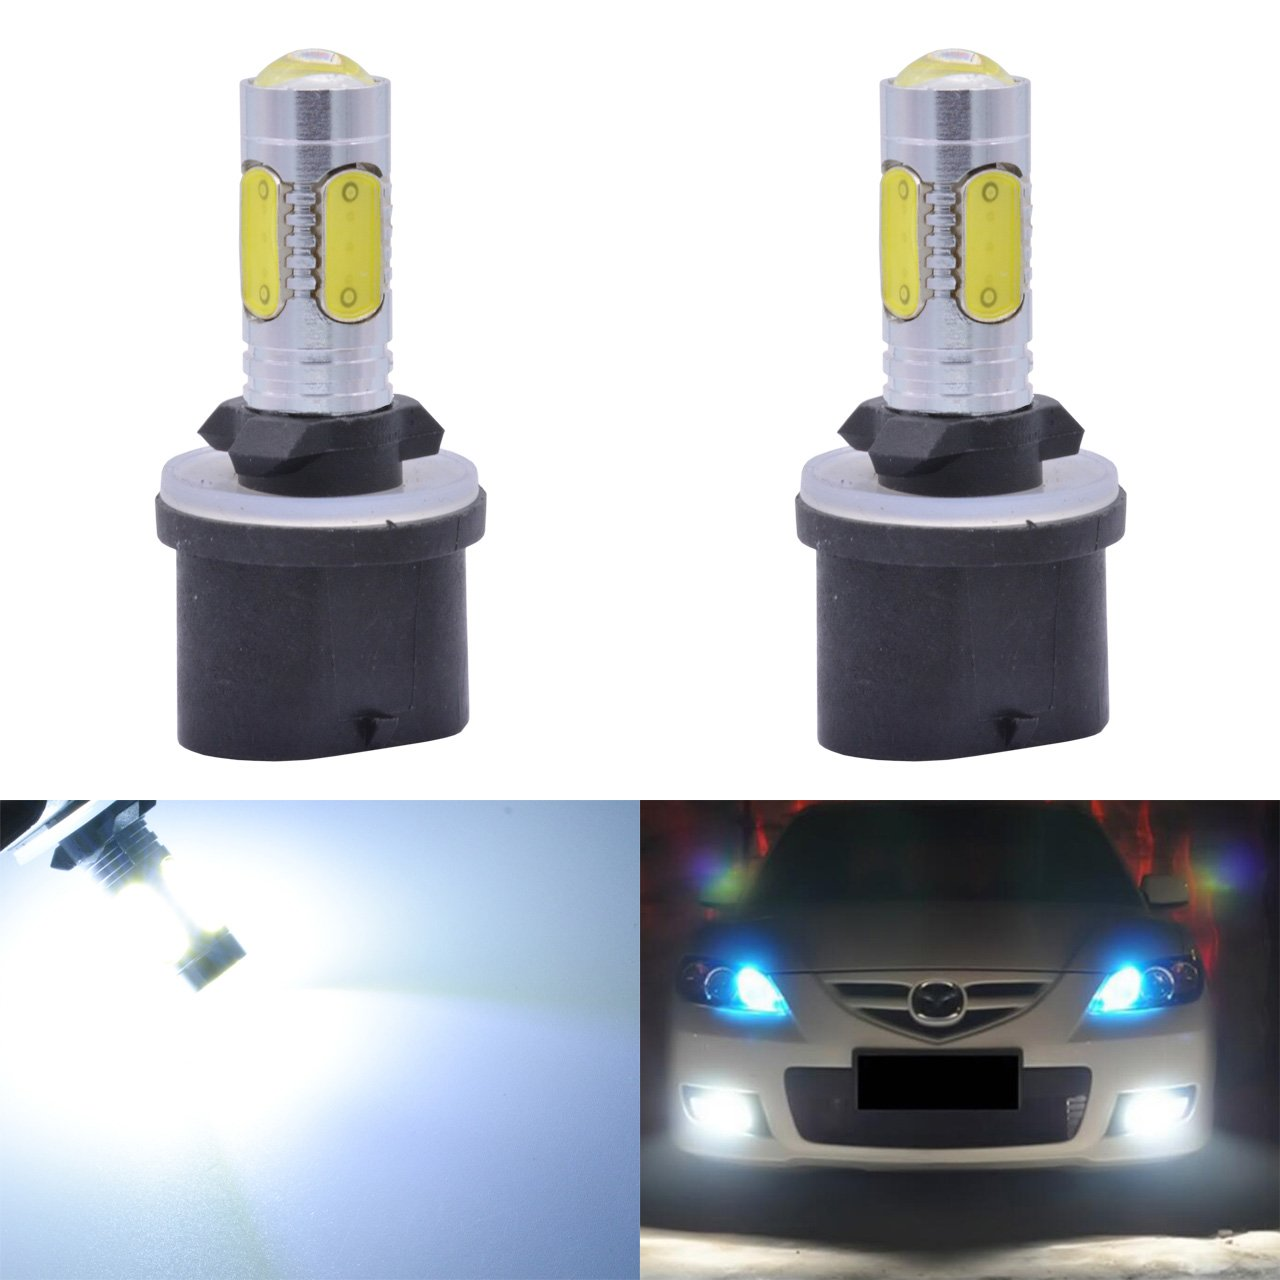 KaTur 1600 Lumens 7.5W COB H1 LED Aluminum Fog Lights DRL Turn Signals Light Bulbs Day Running Light 12V White 6000K (2-Pack)